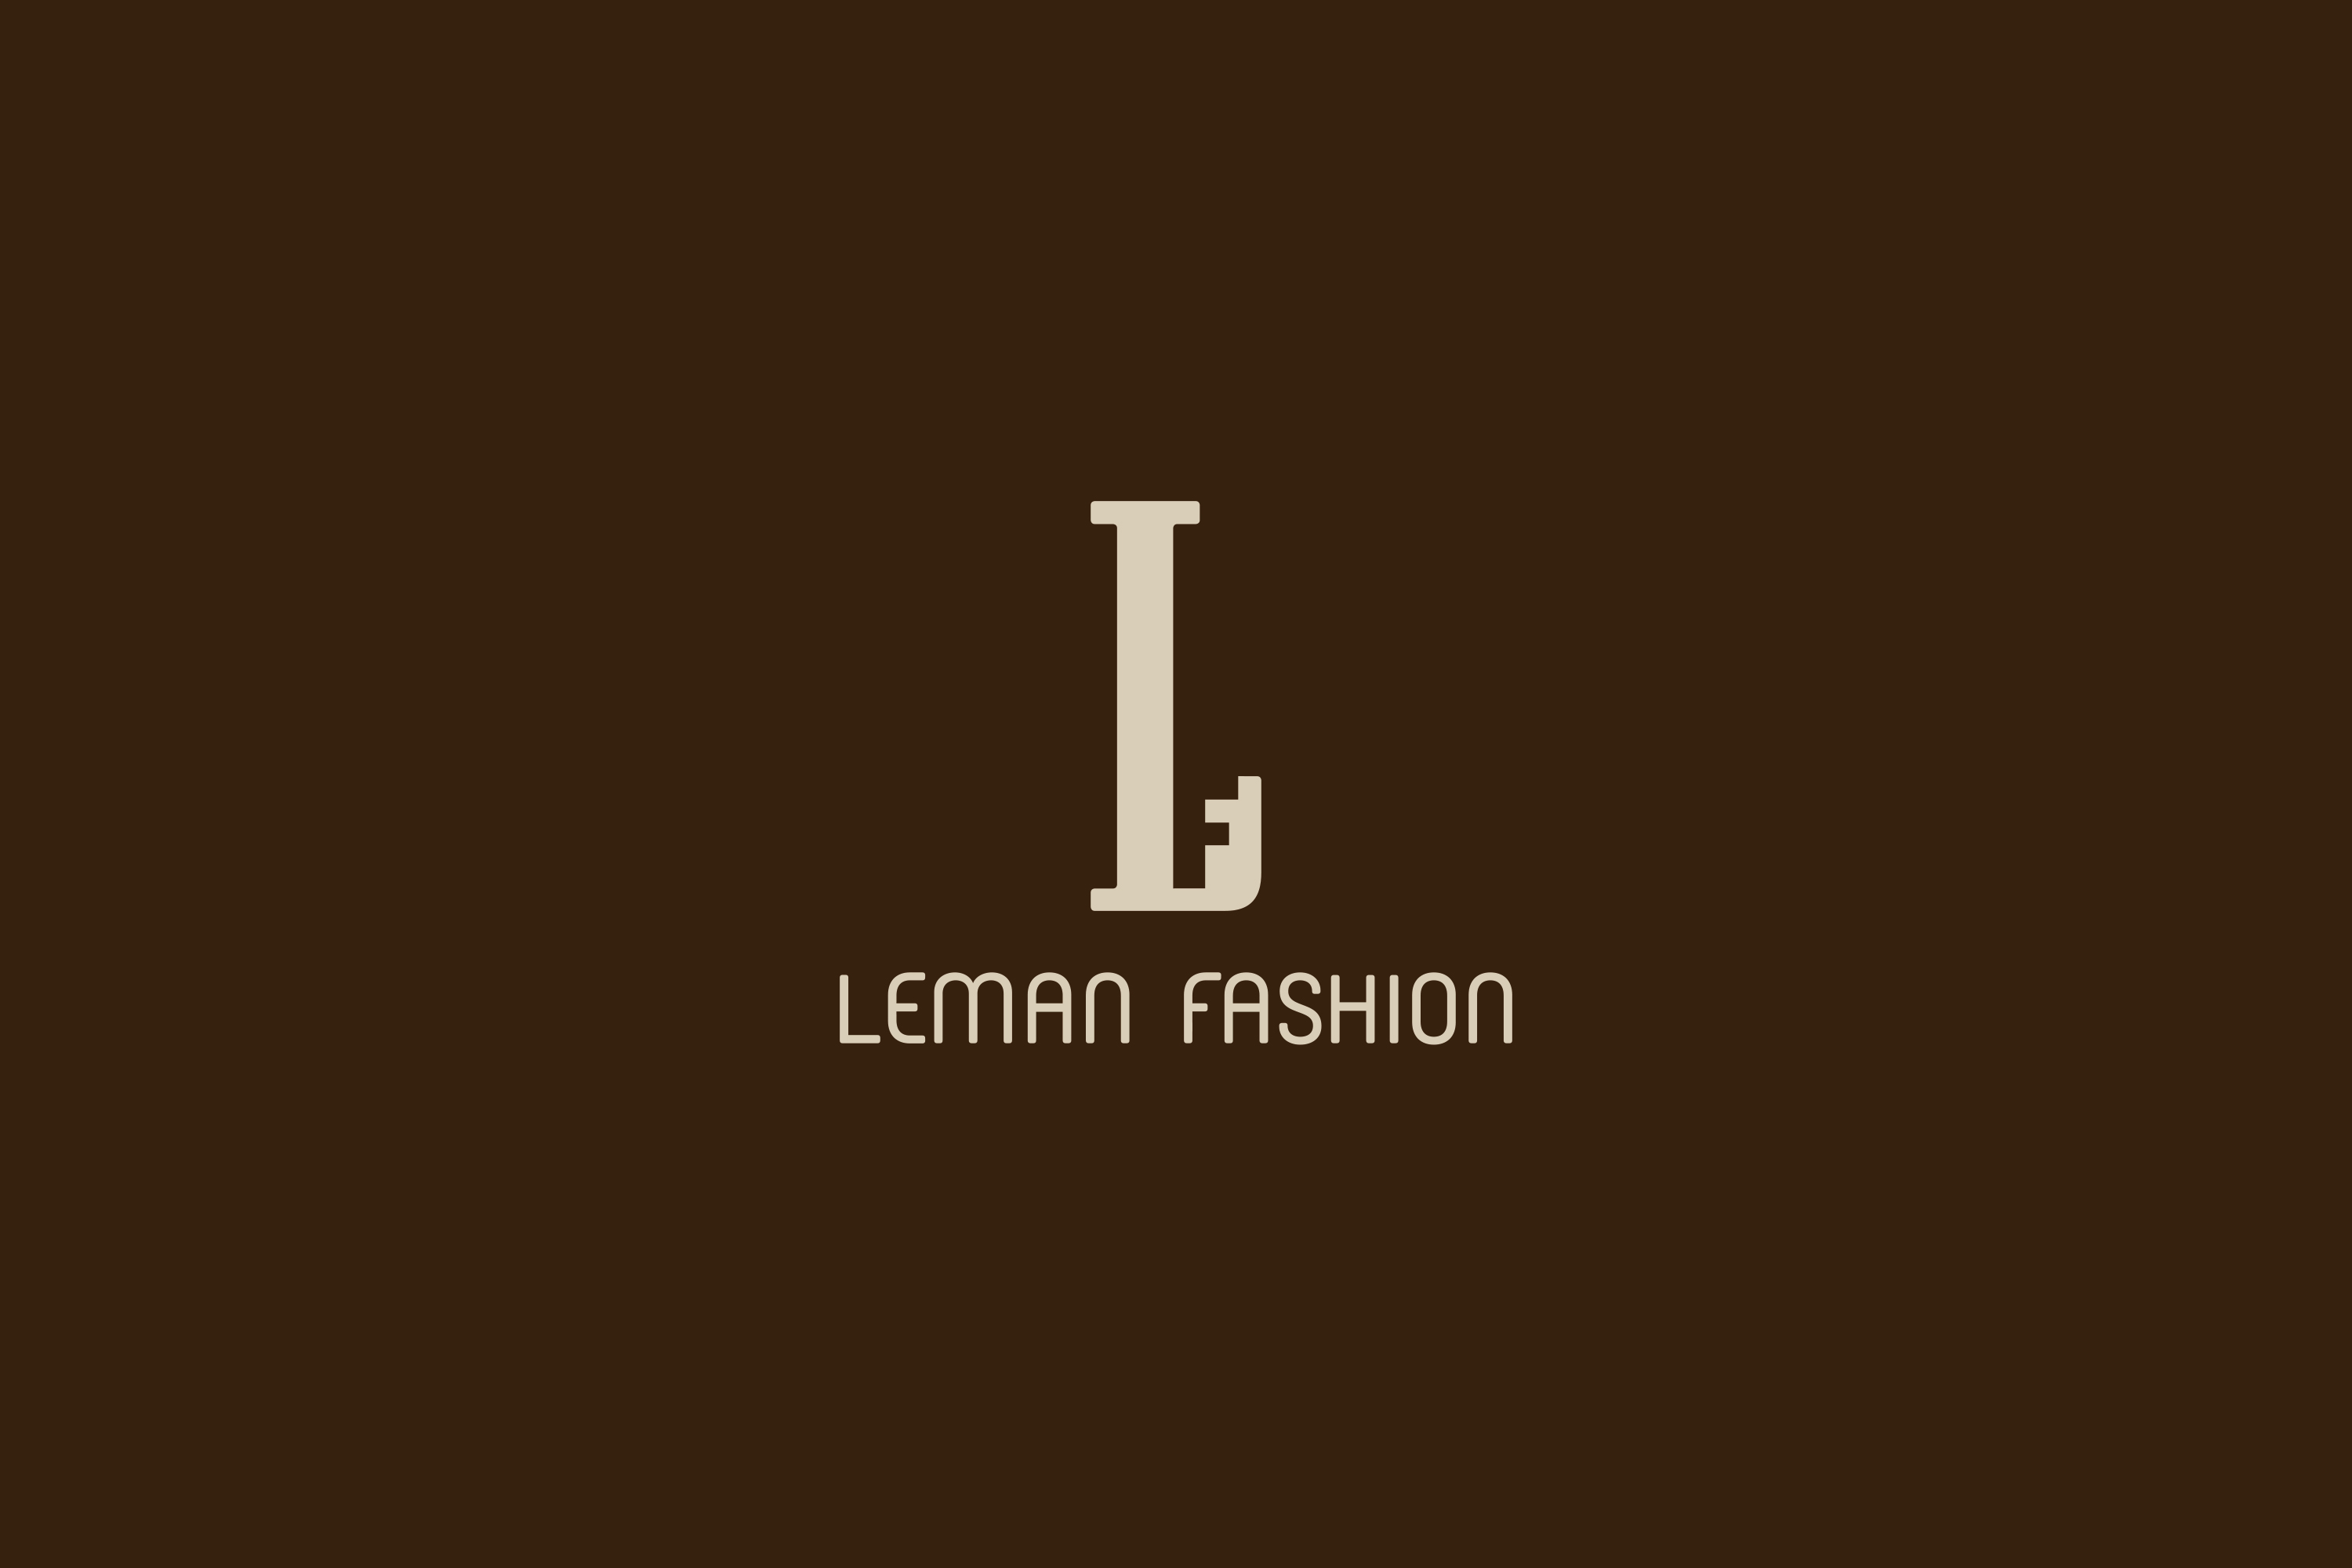 leman fashion logo couleur